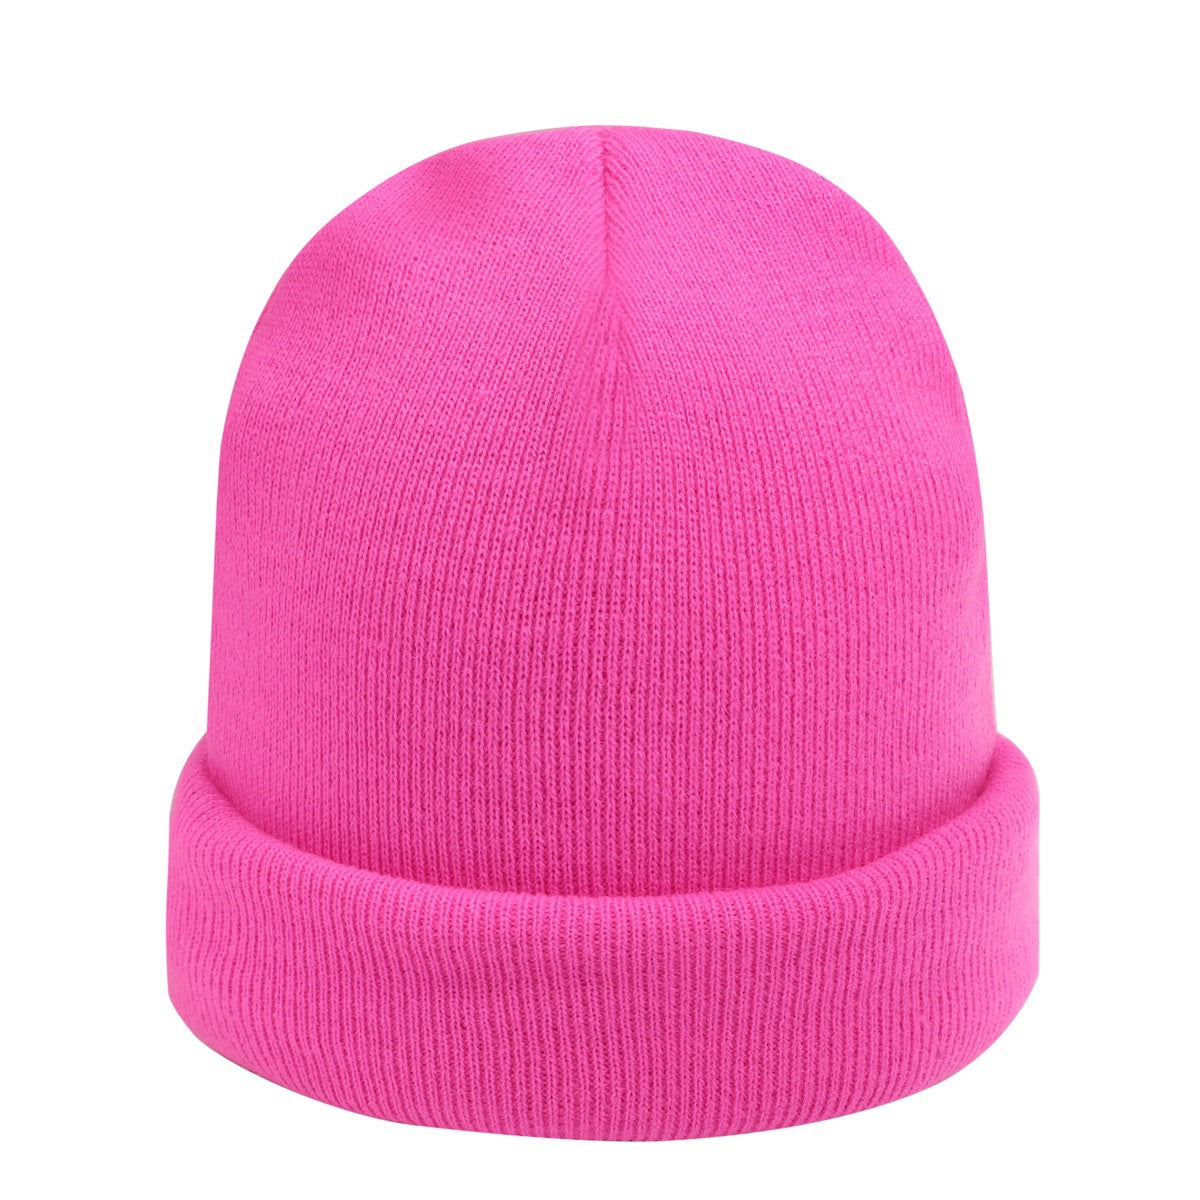 Beanie Neon Pink | Gift Pop Boutique